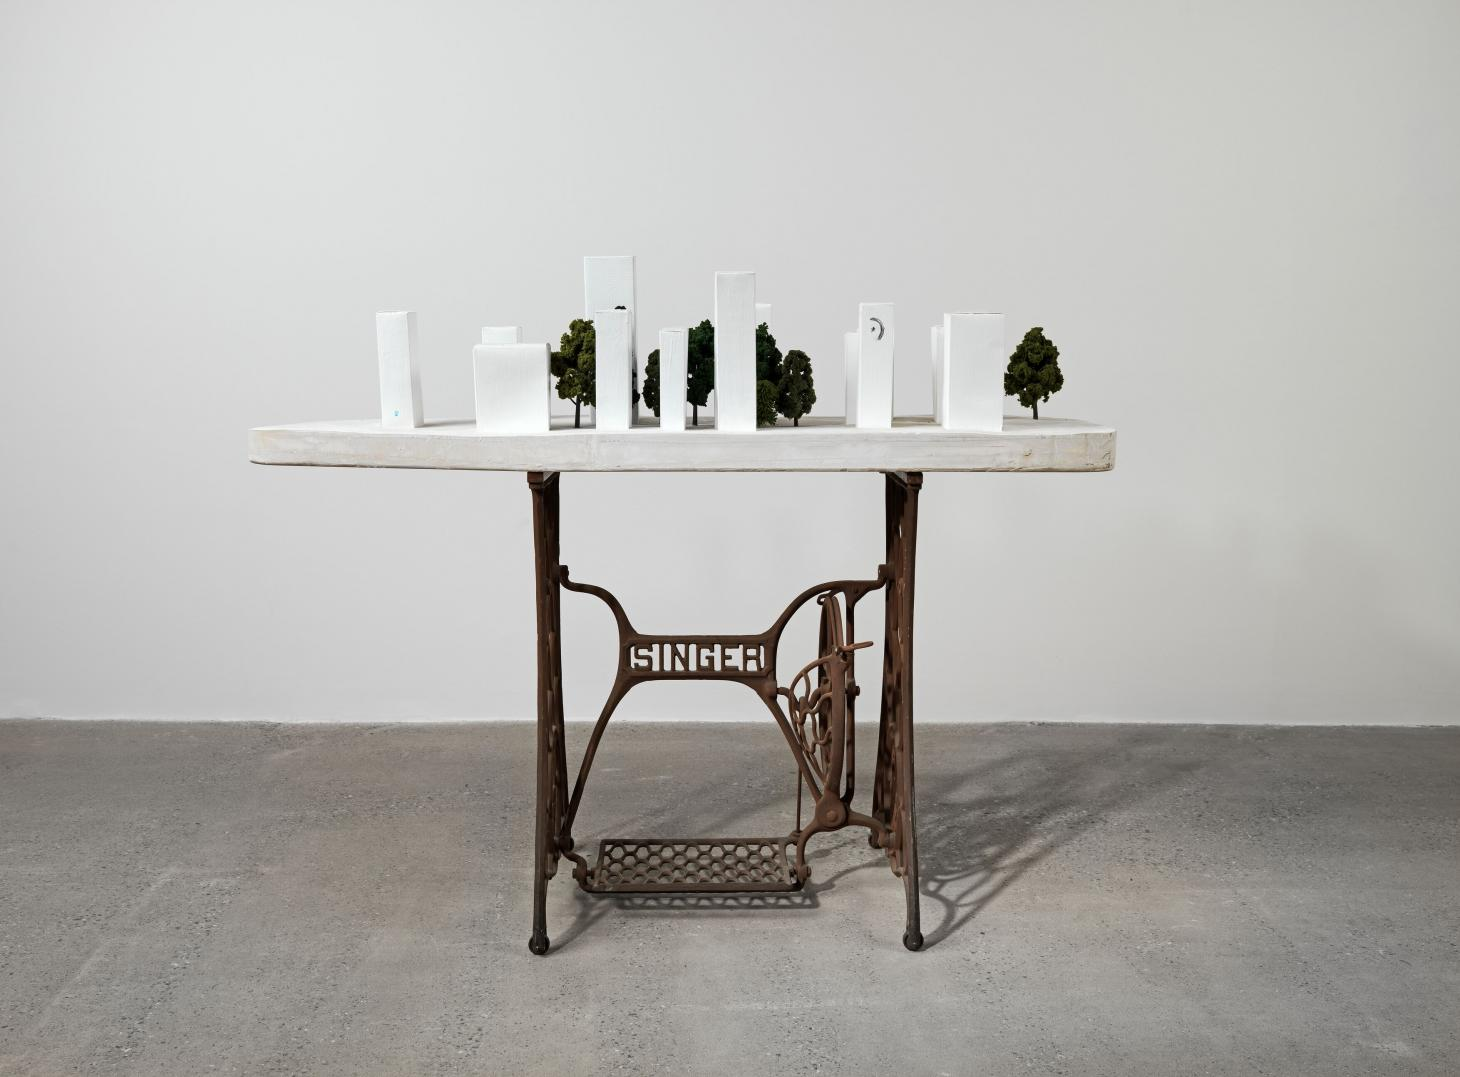 Image of a sculpture by Henry Taylor, Untitled, 2020. On display as part of the artist's exhibition at Hauser & Wirth Somerset